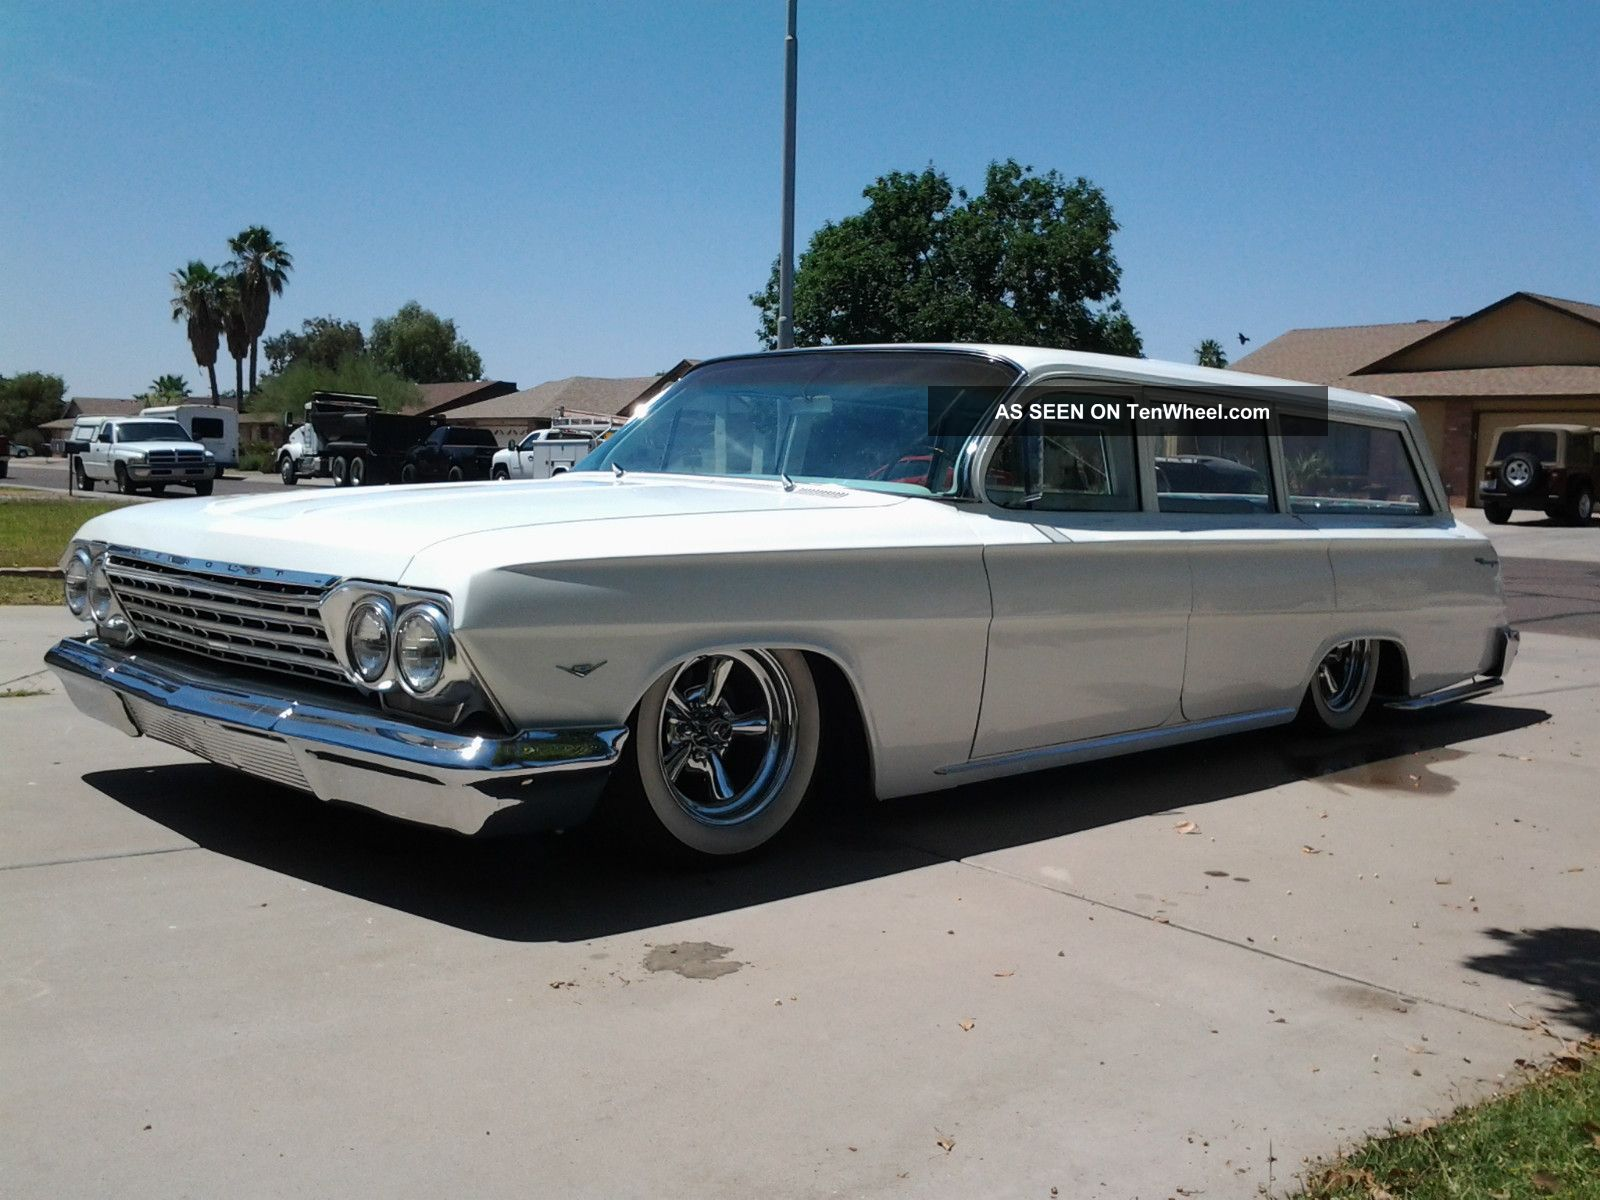 1962 Chevrolet Biscayne Wagon,  Air Bagged,  Shaved Door Handles,  Bel Air,  Impala Other photo